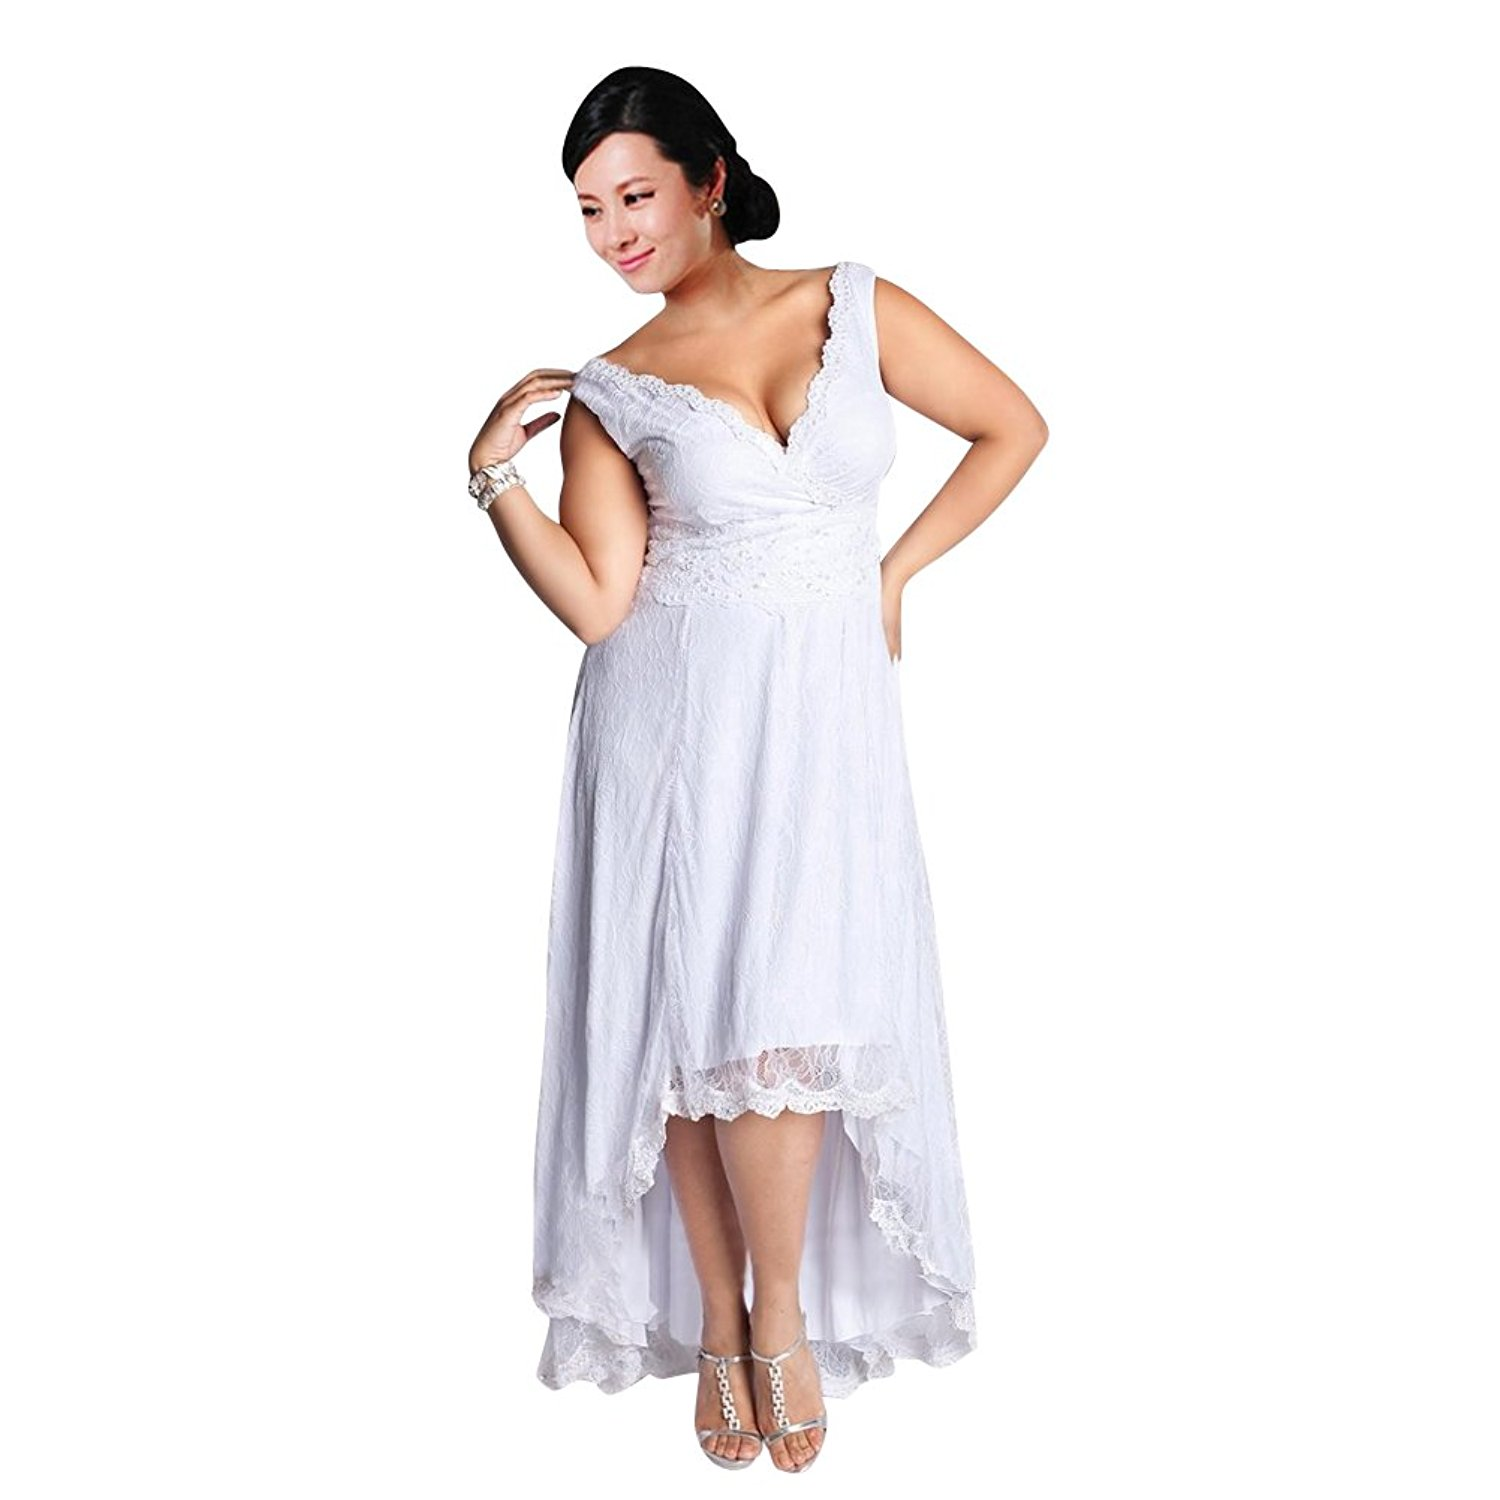 Mollybridal Women's Plus size Lace Short Wedding Dresses V neck